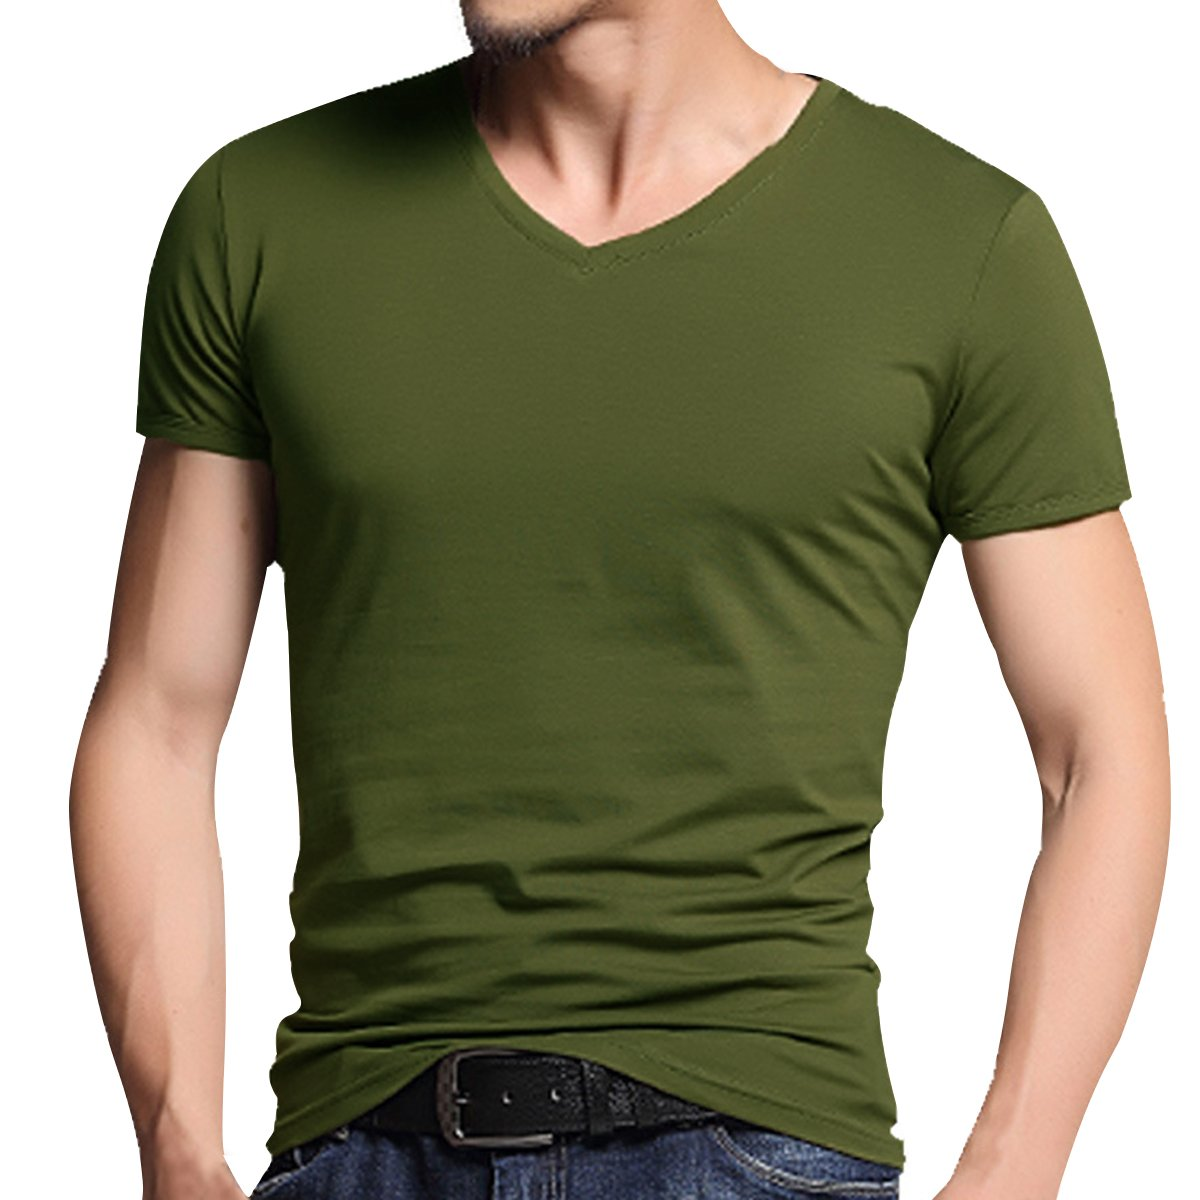 98f2de59698 Please choose correct US size when you place an order. Casual tops